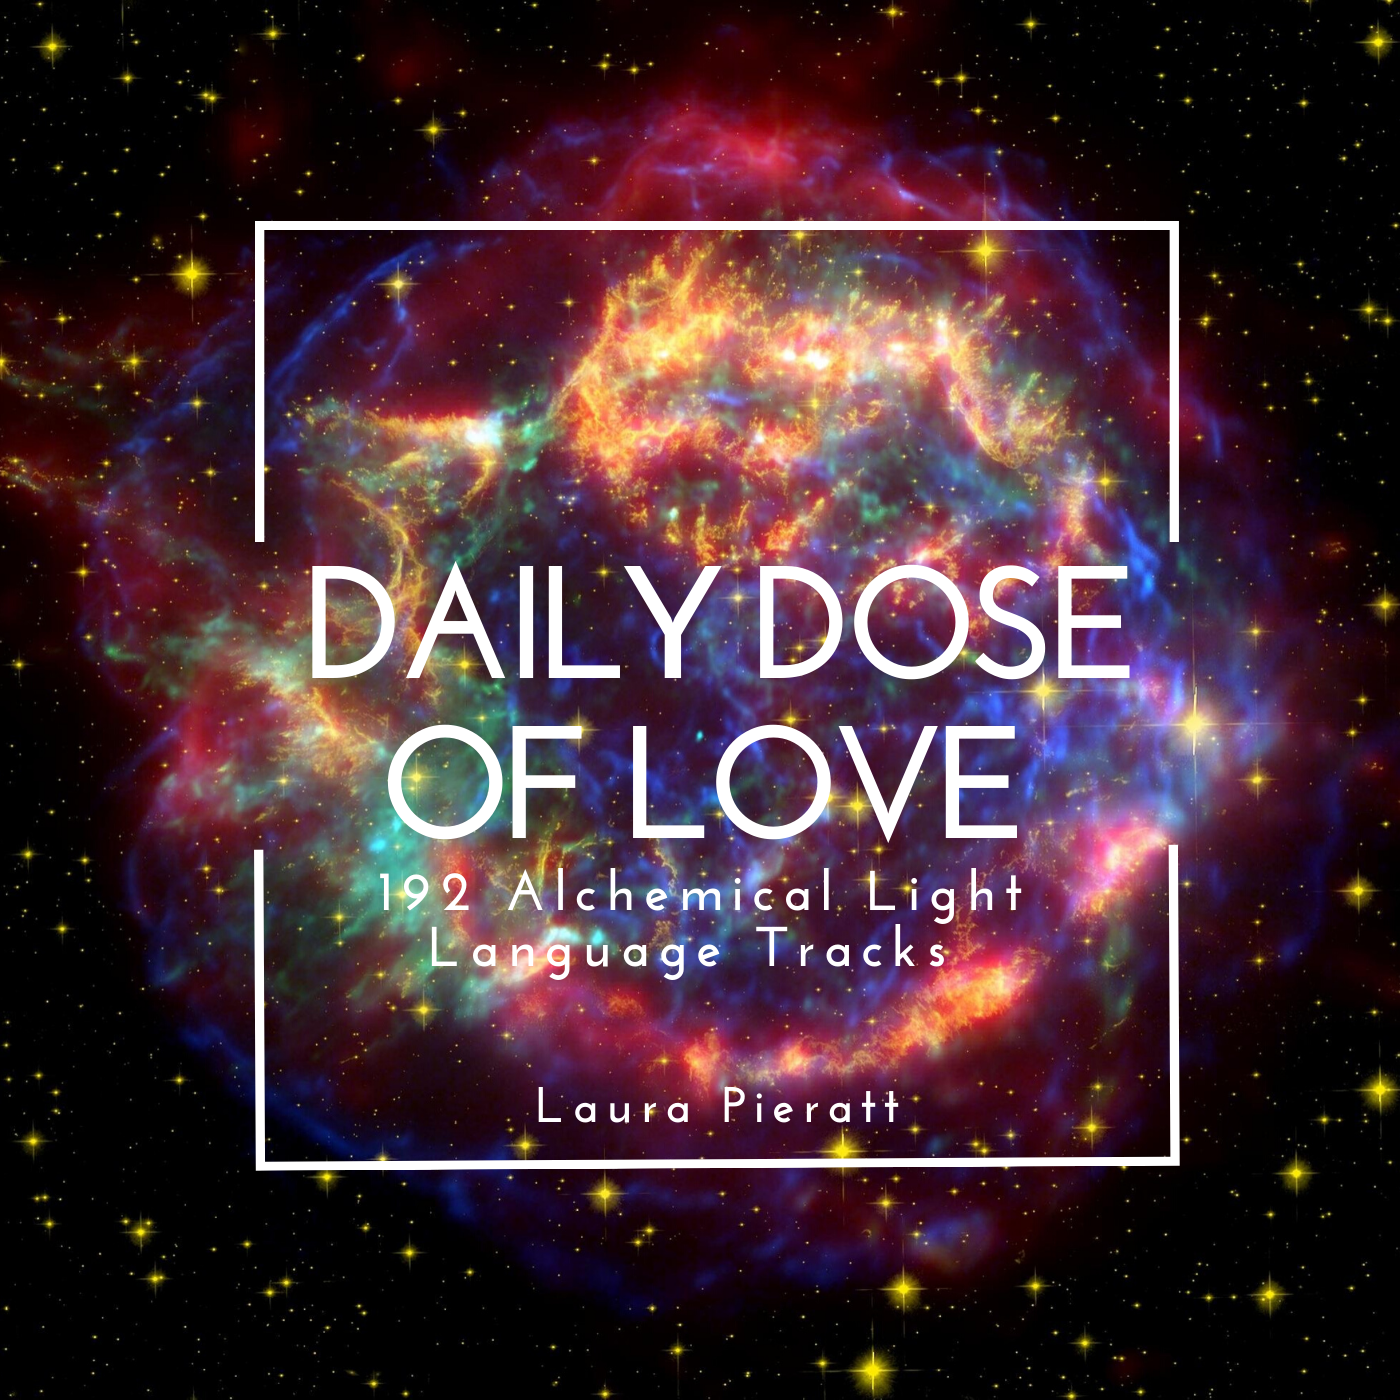 Daily Dose of Love Light Language Album by Laura Pieratt